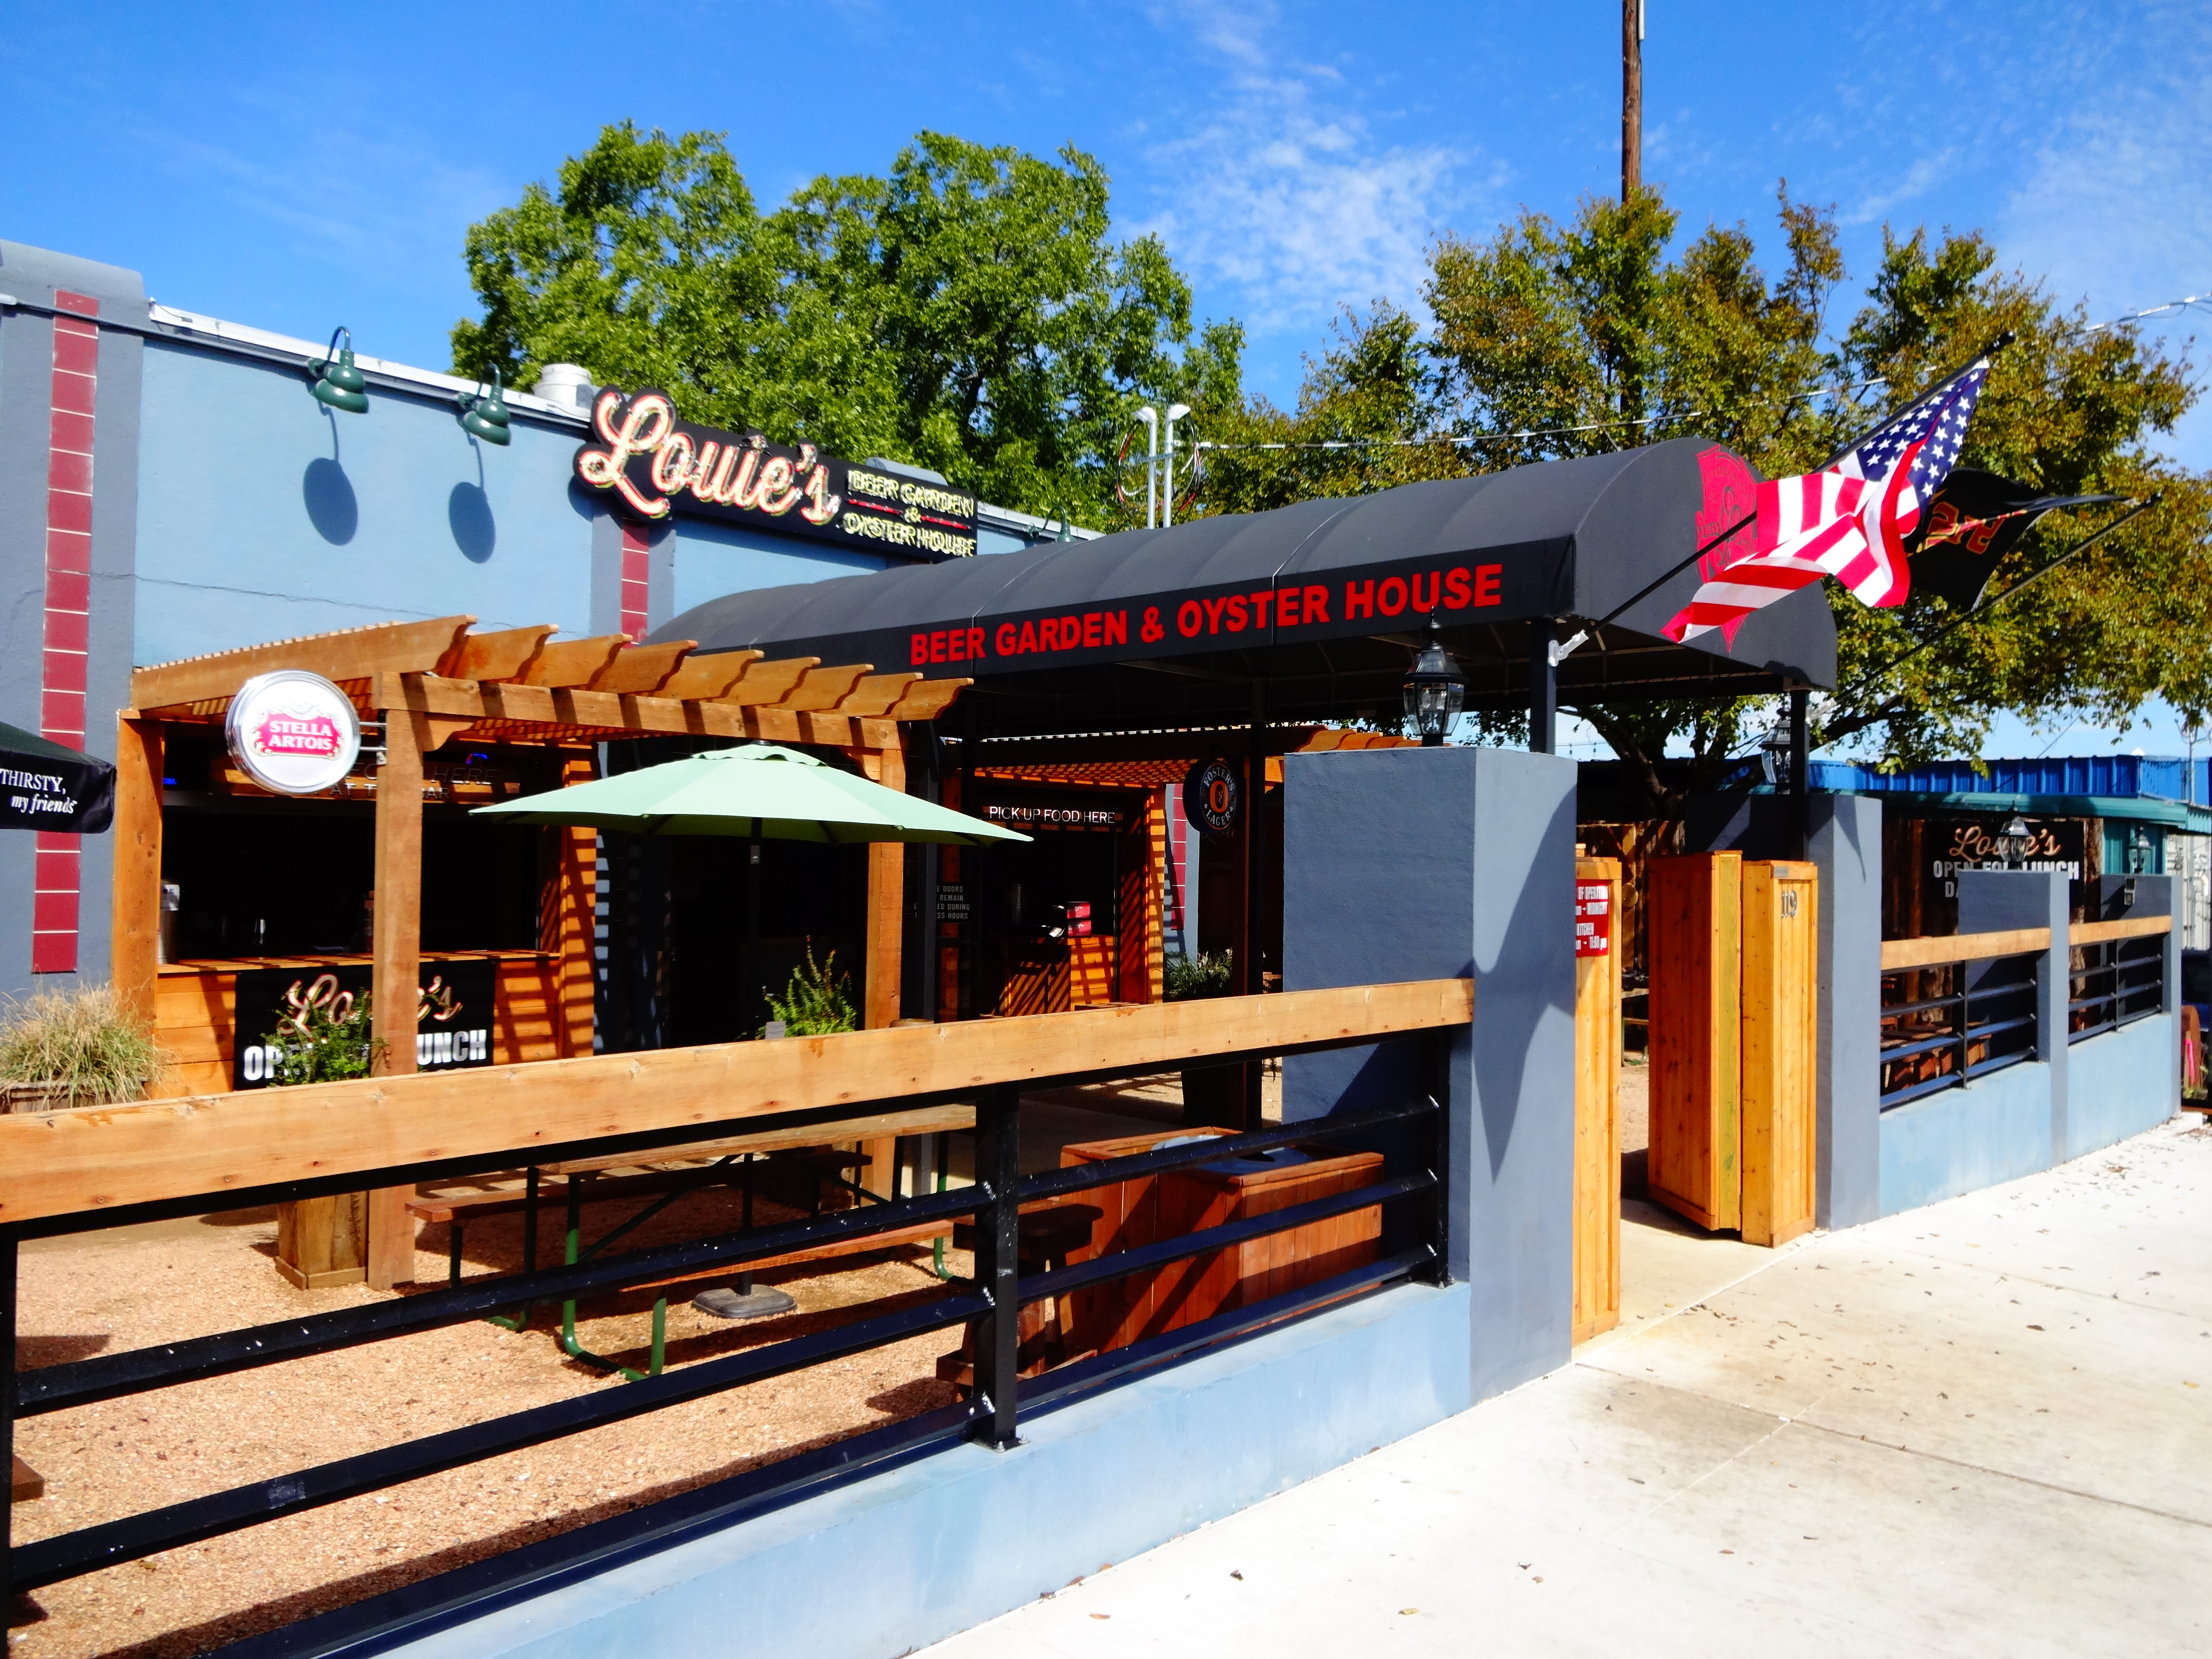 Louies Oyster House and Beer Garden Review The San Marcos Food